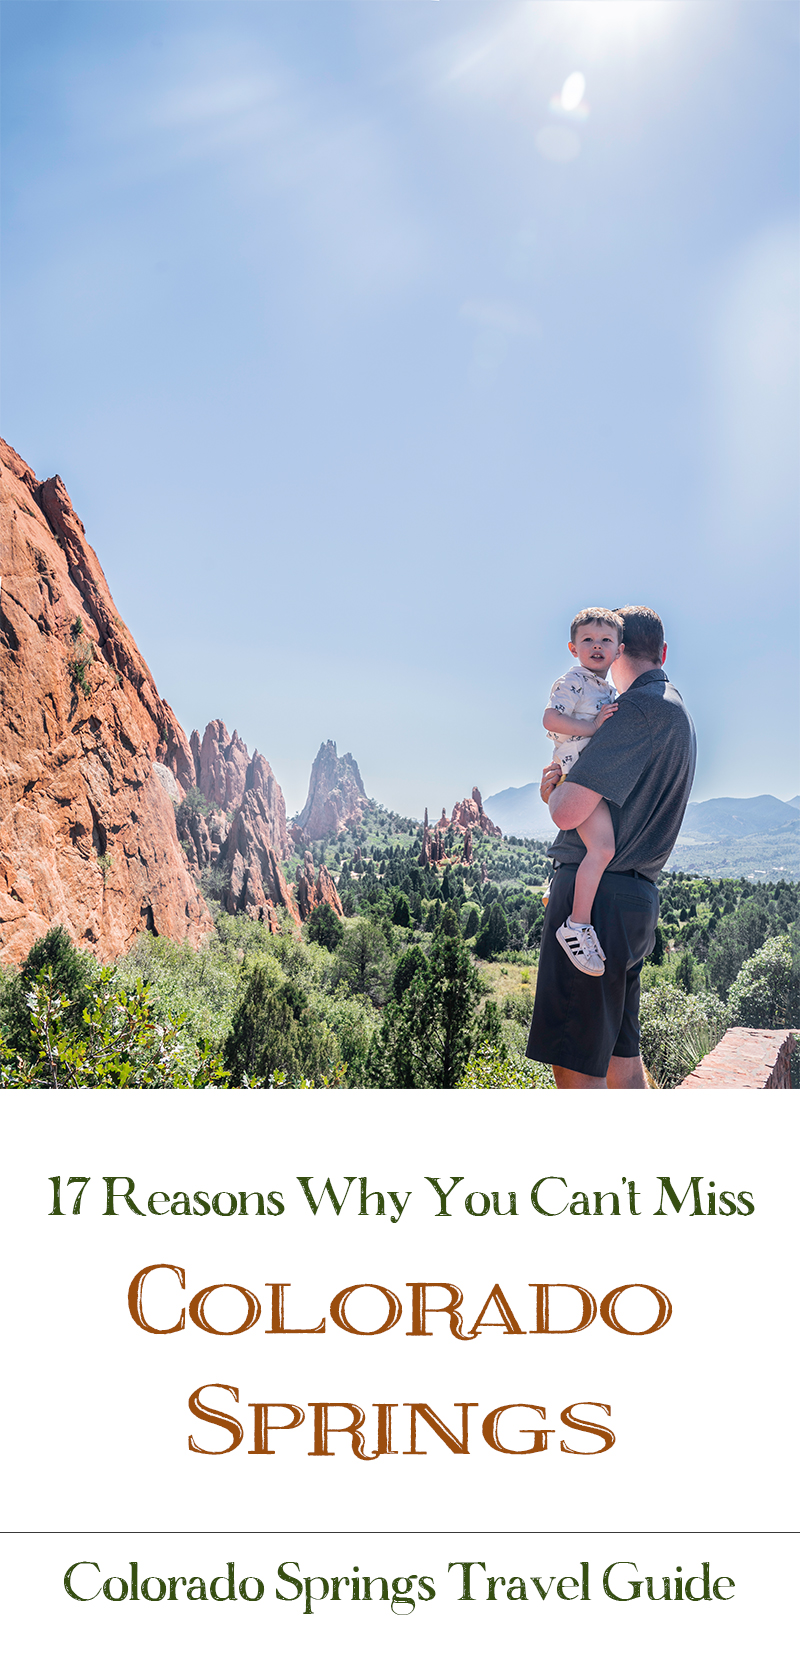 17-Reasons-Why-You-Cannot-Miss-Traveling-To-Colorado-Springs